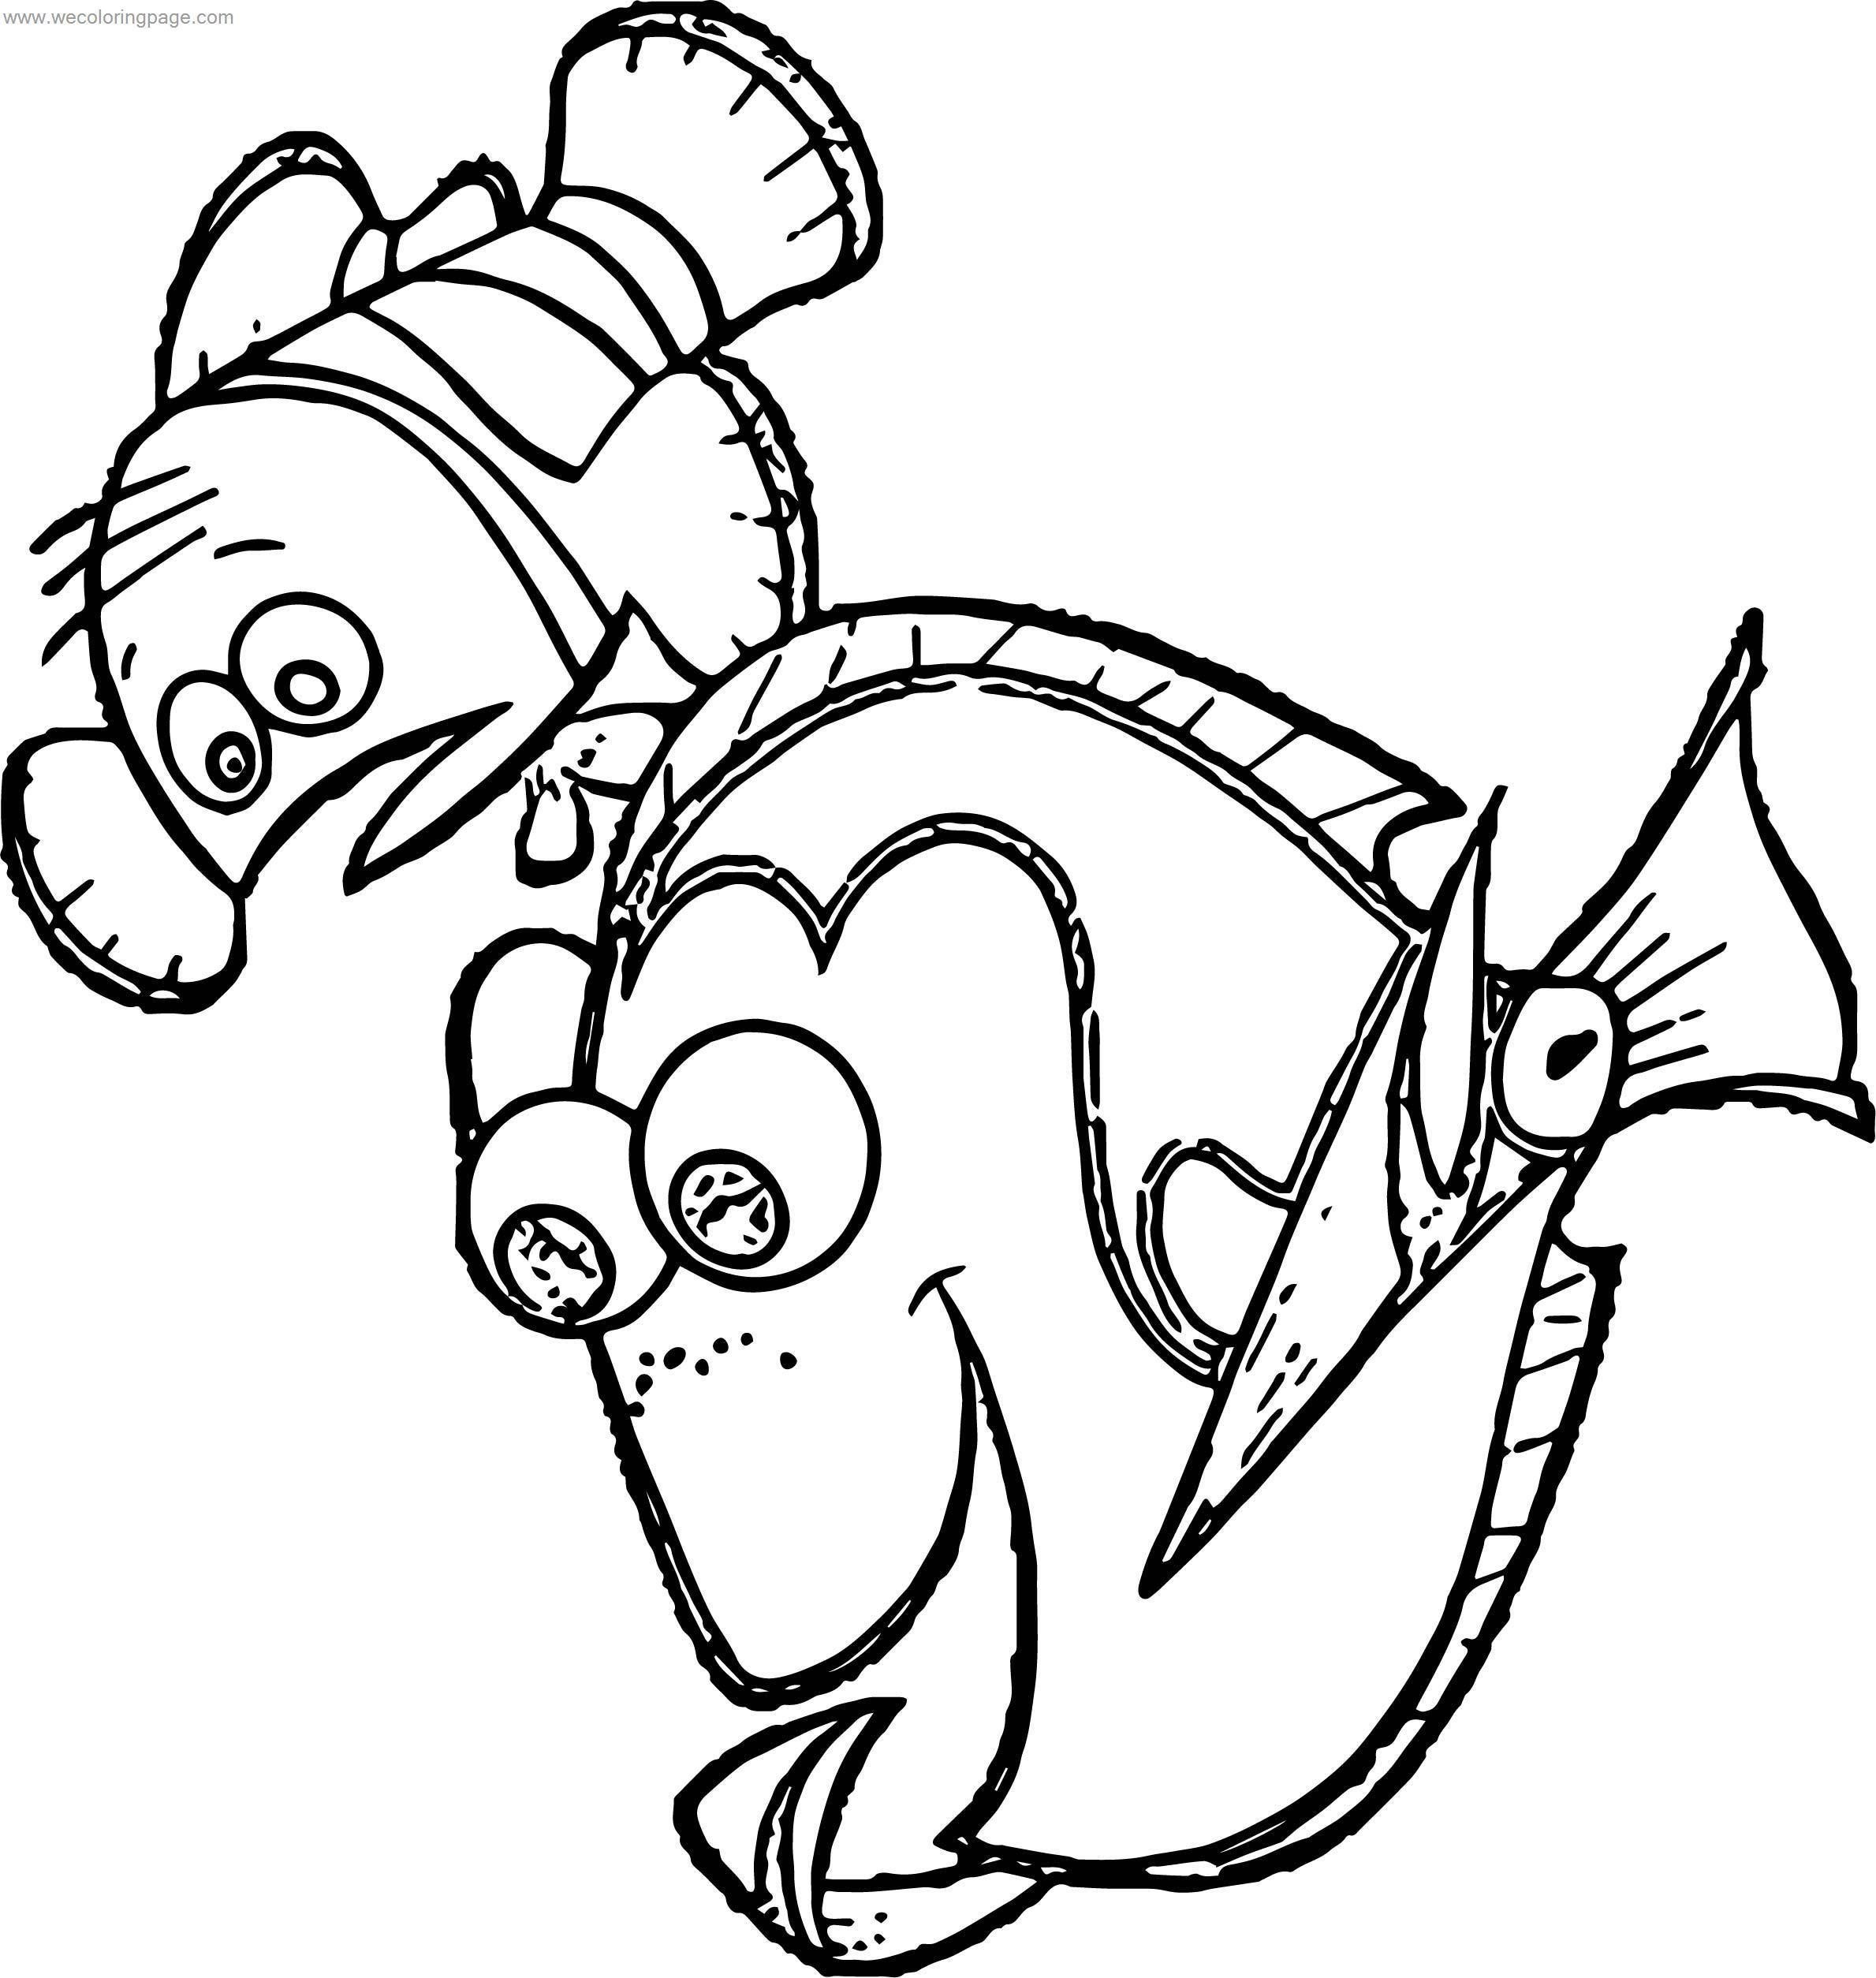 Disney Finding Nemo Look Now Coloring Pages